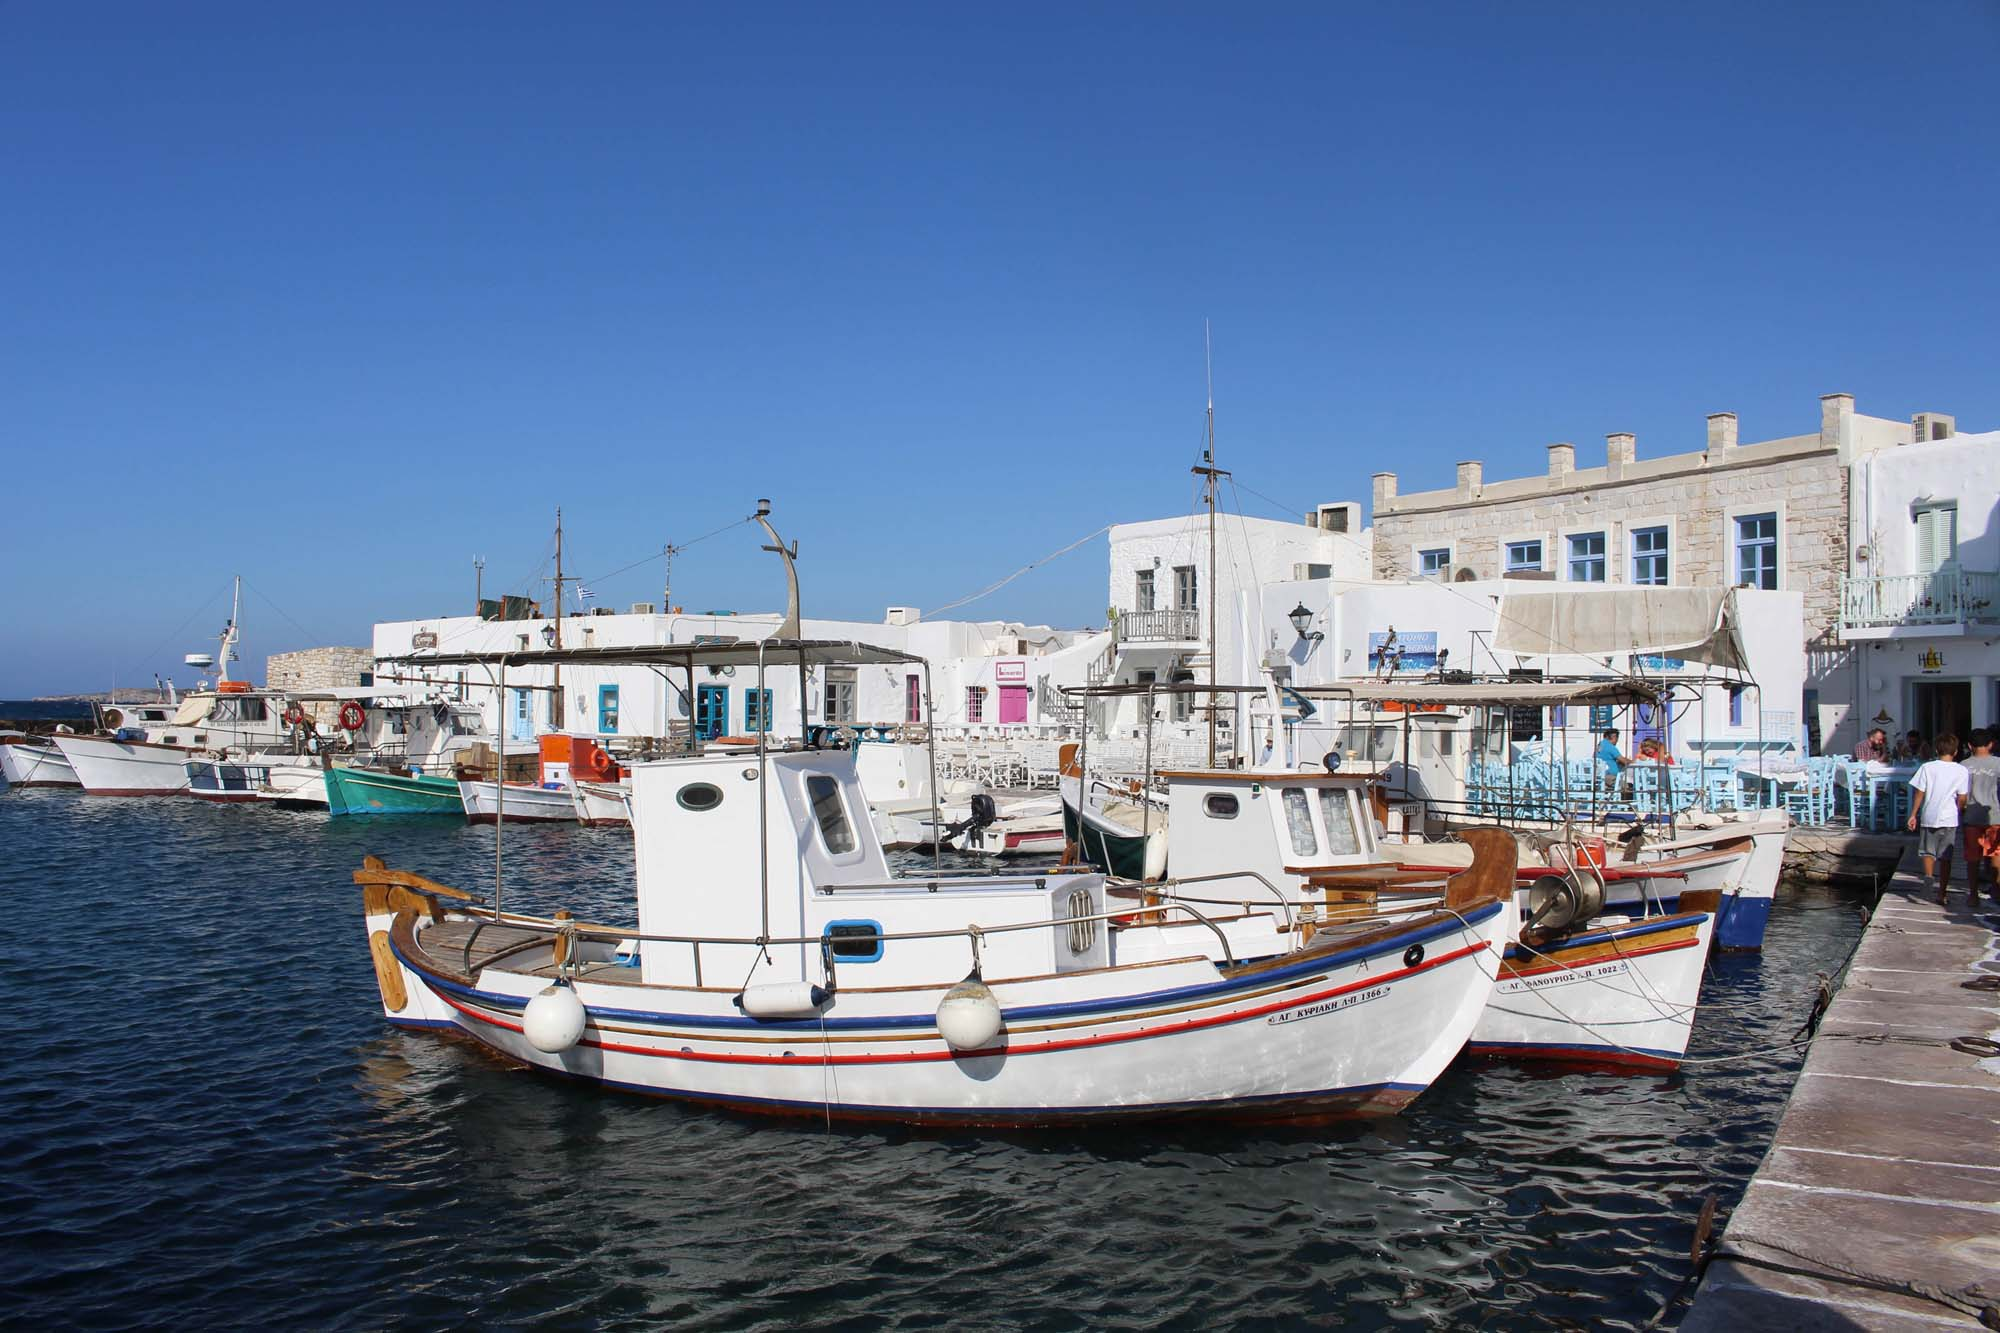 greece-paros-travel-linstantflo-28-sur-35